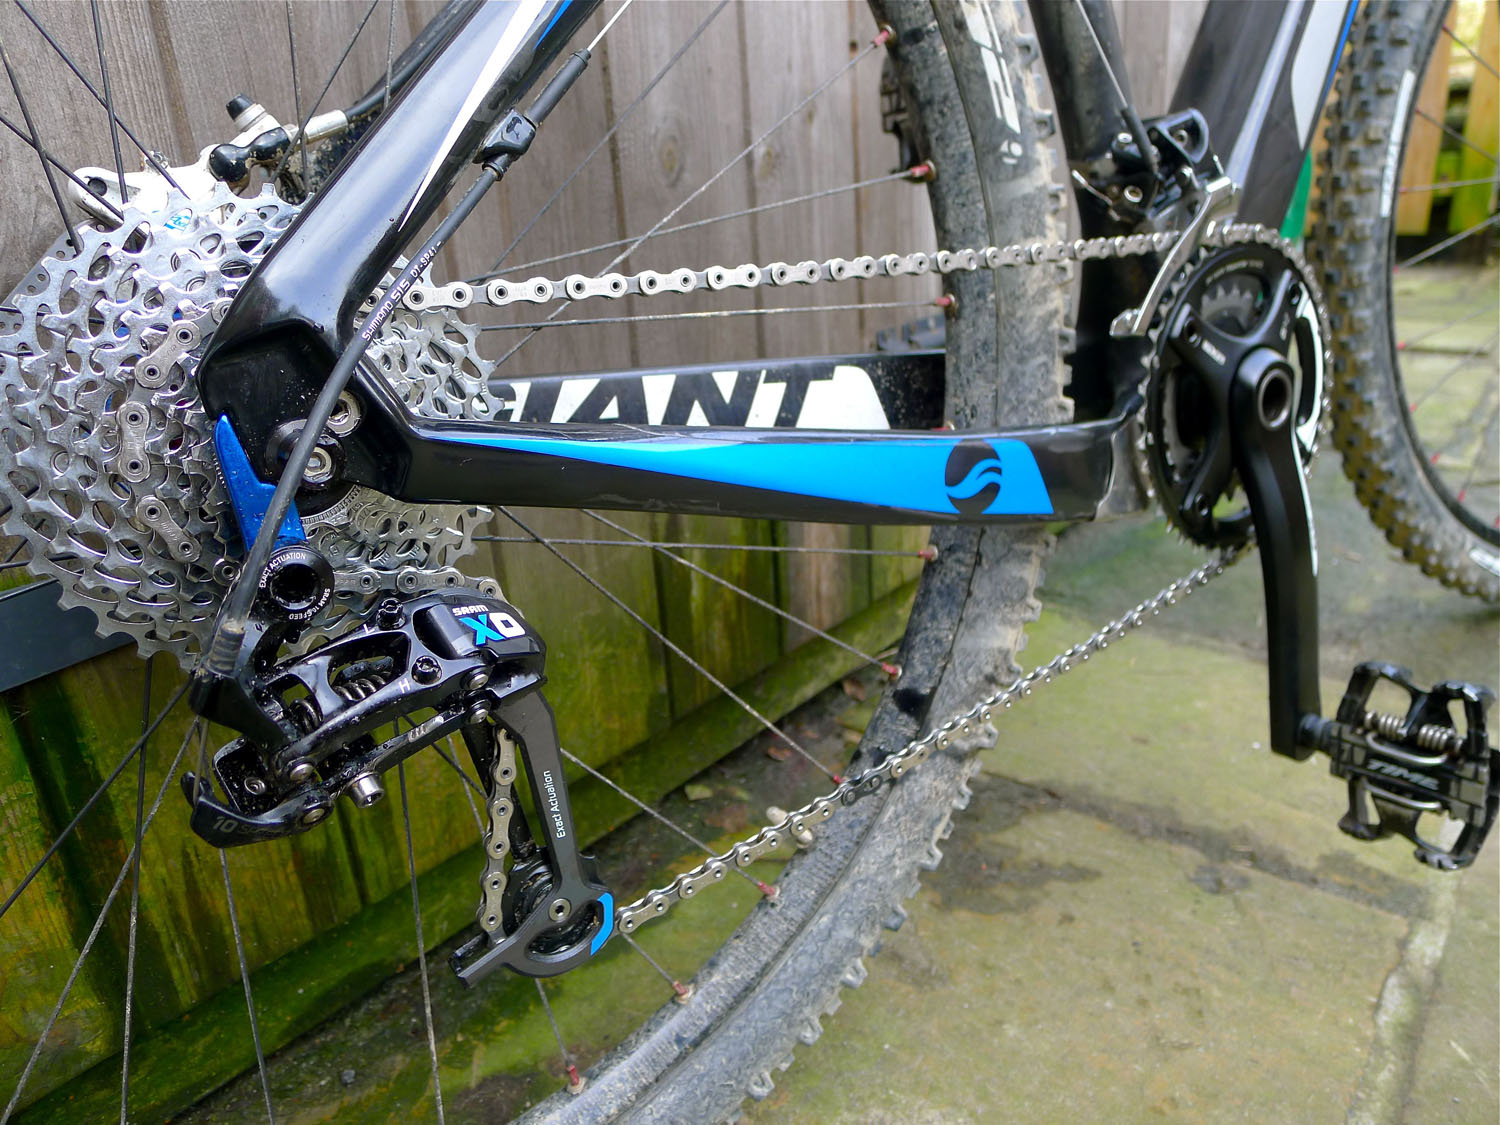 Giant Xtc Composite 29 Er 0 2012 Review The Bike List